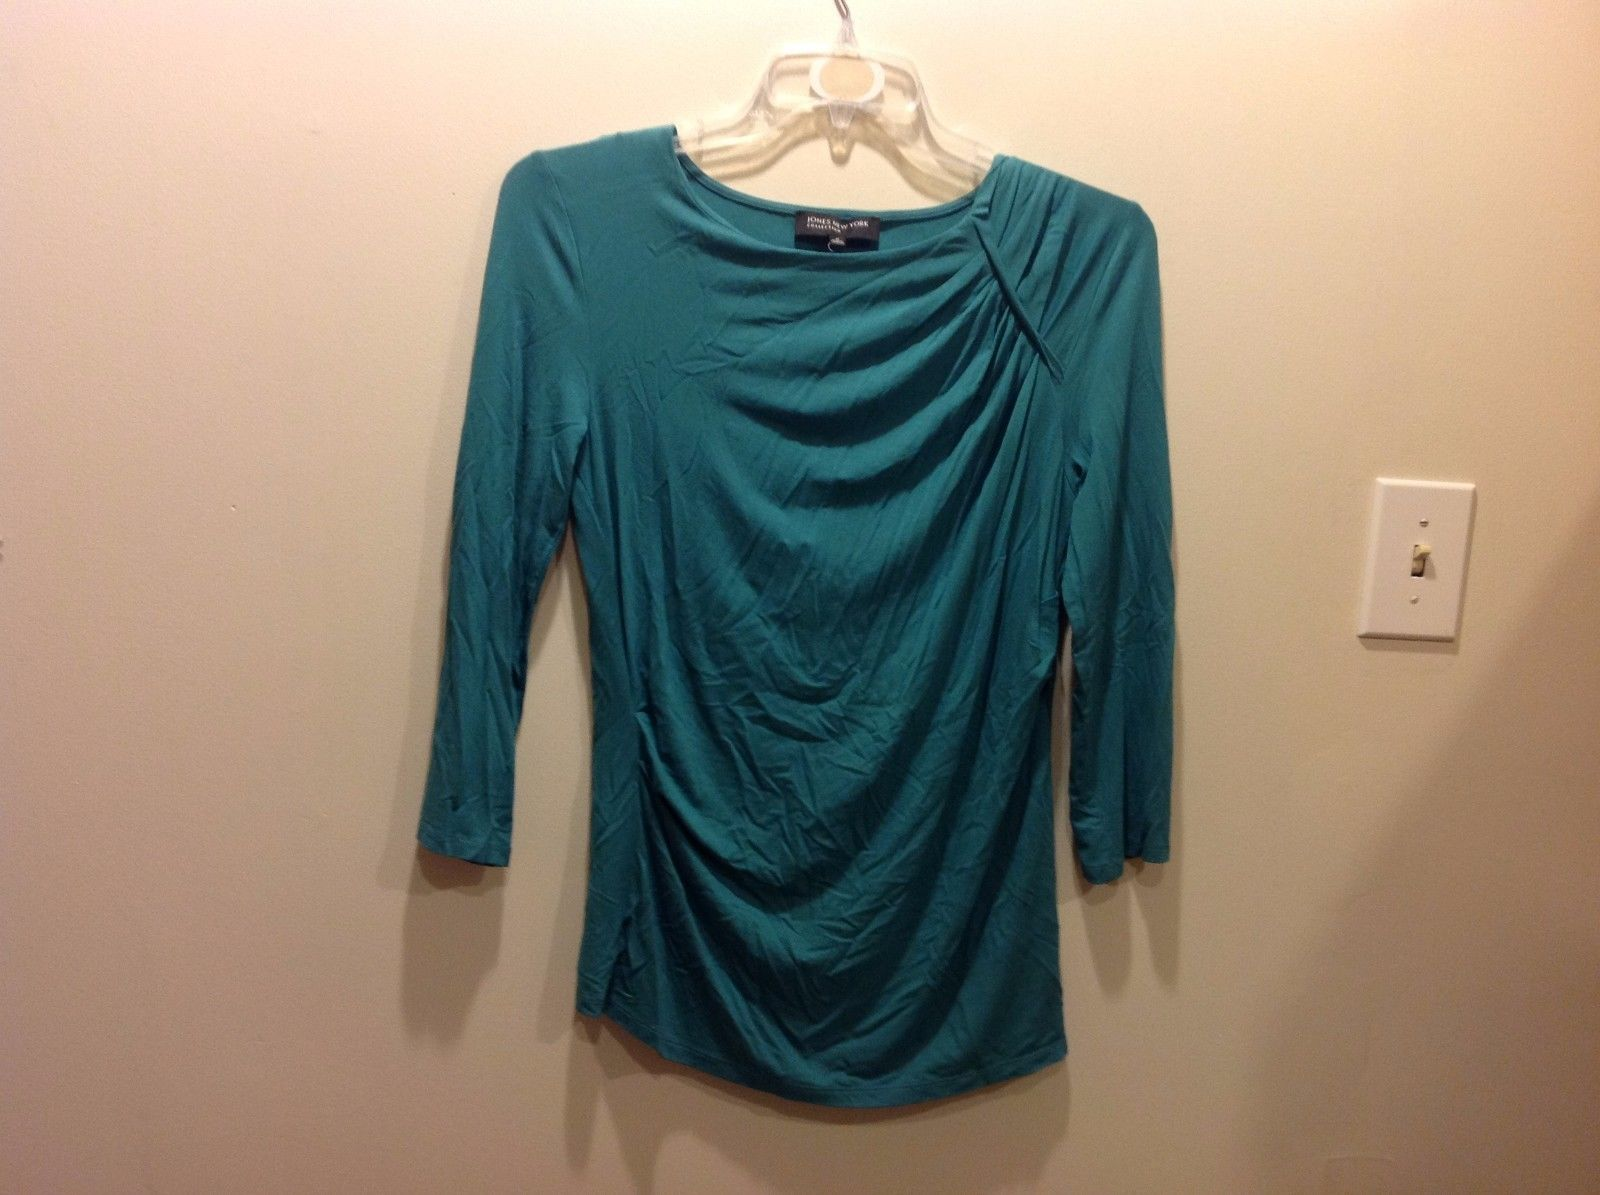 Jones New York Stretchy Teal Stylish Blouse Sz M